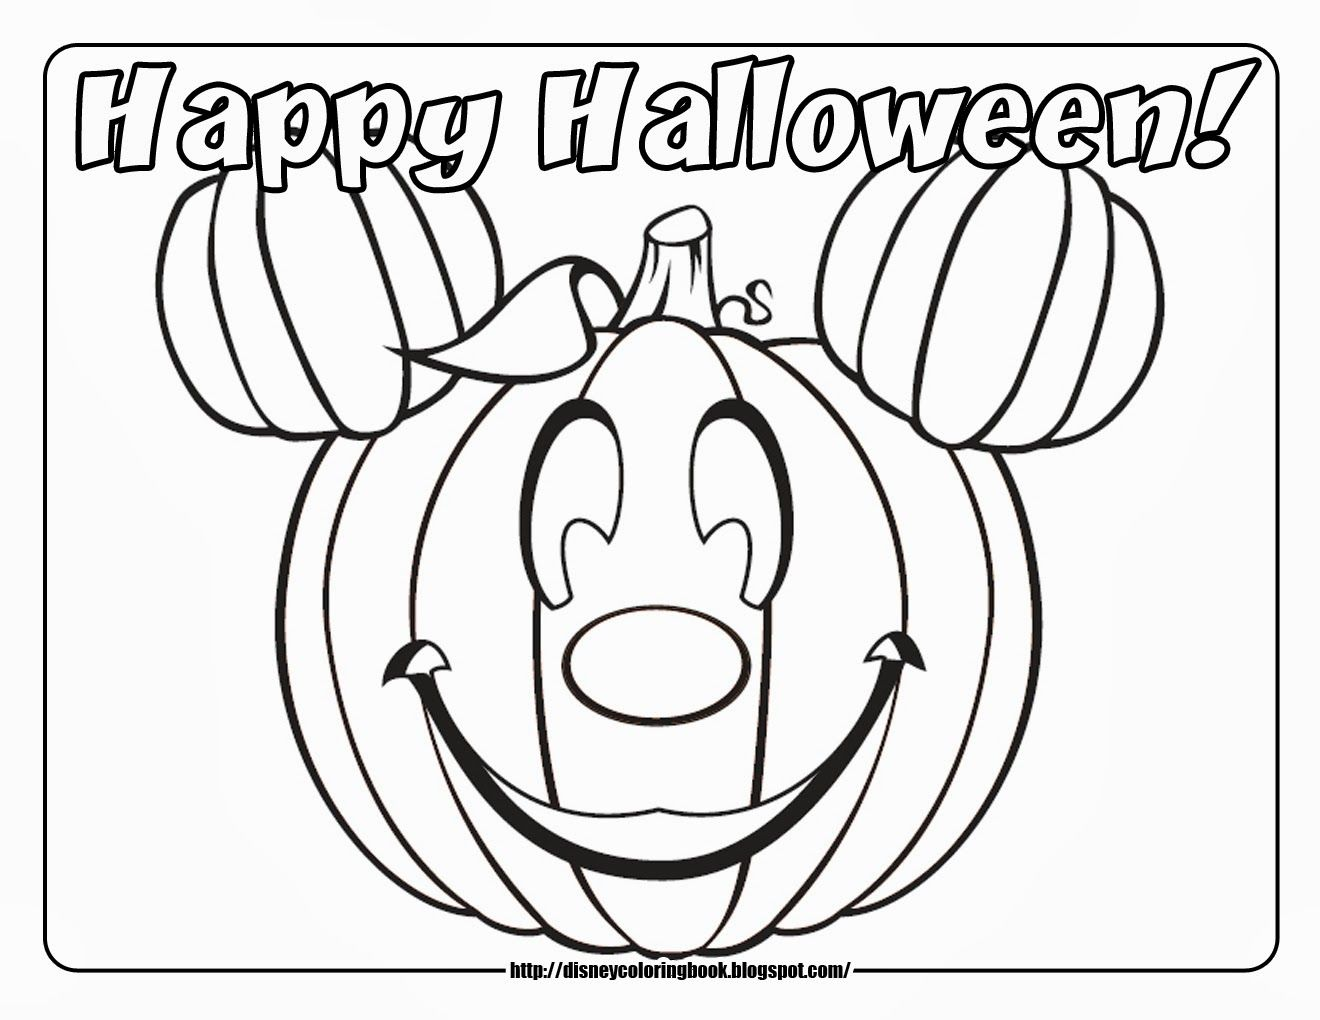 Happy Halloween Mickey Mouse Pumpkin Printing Tip I